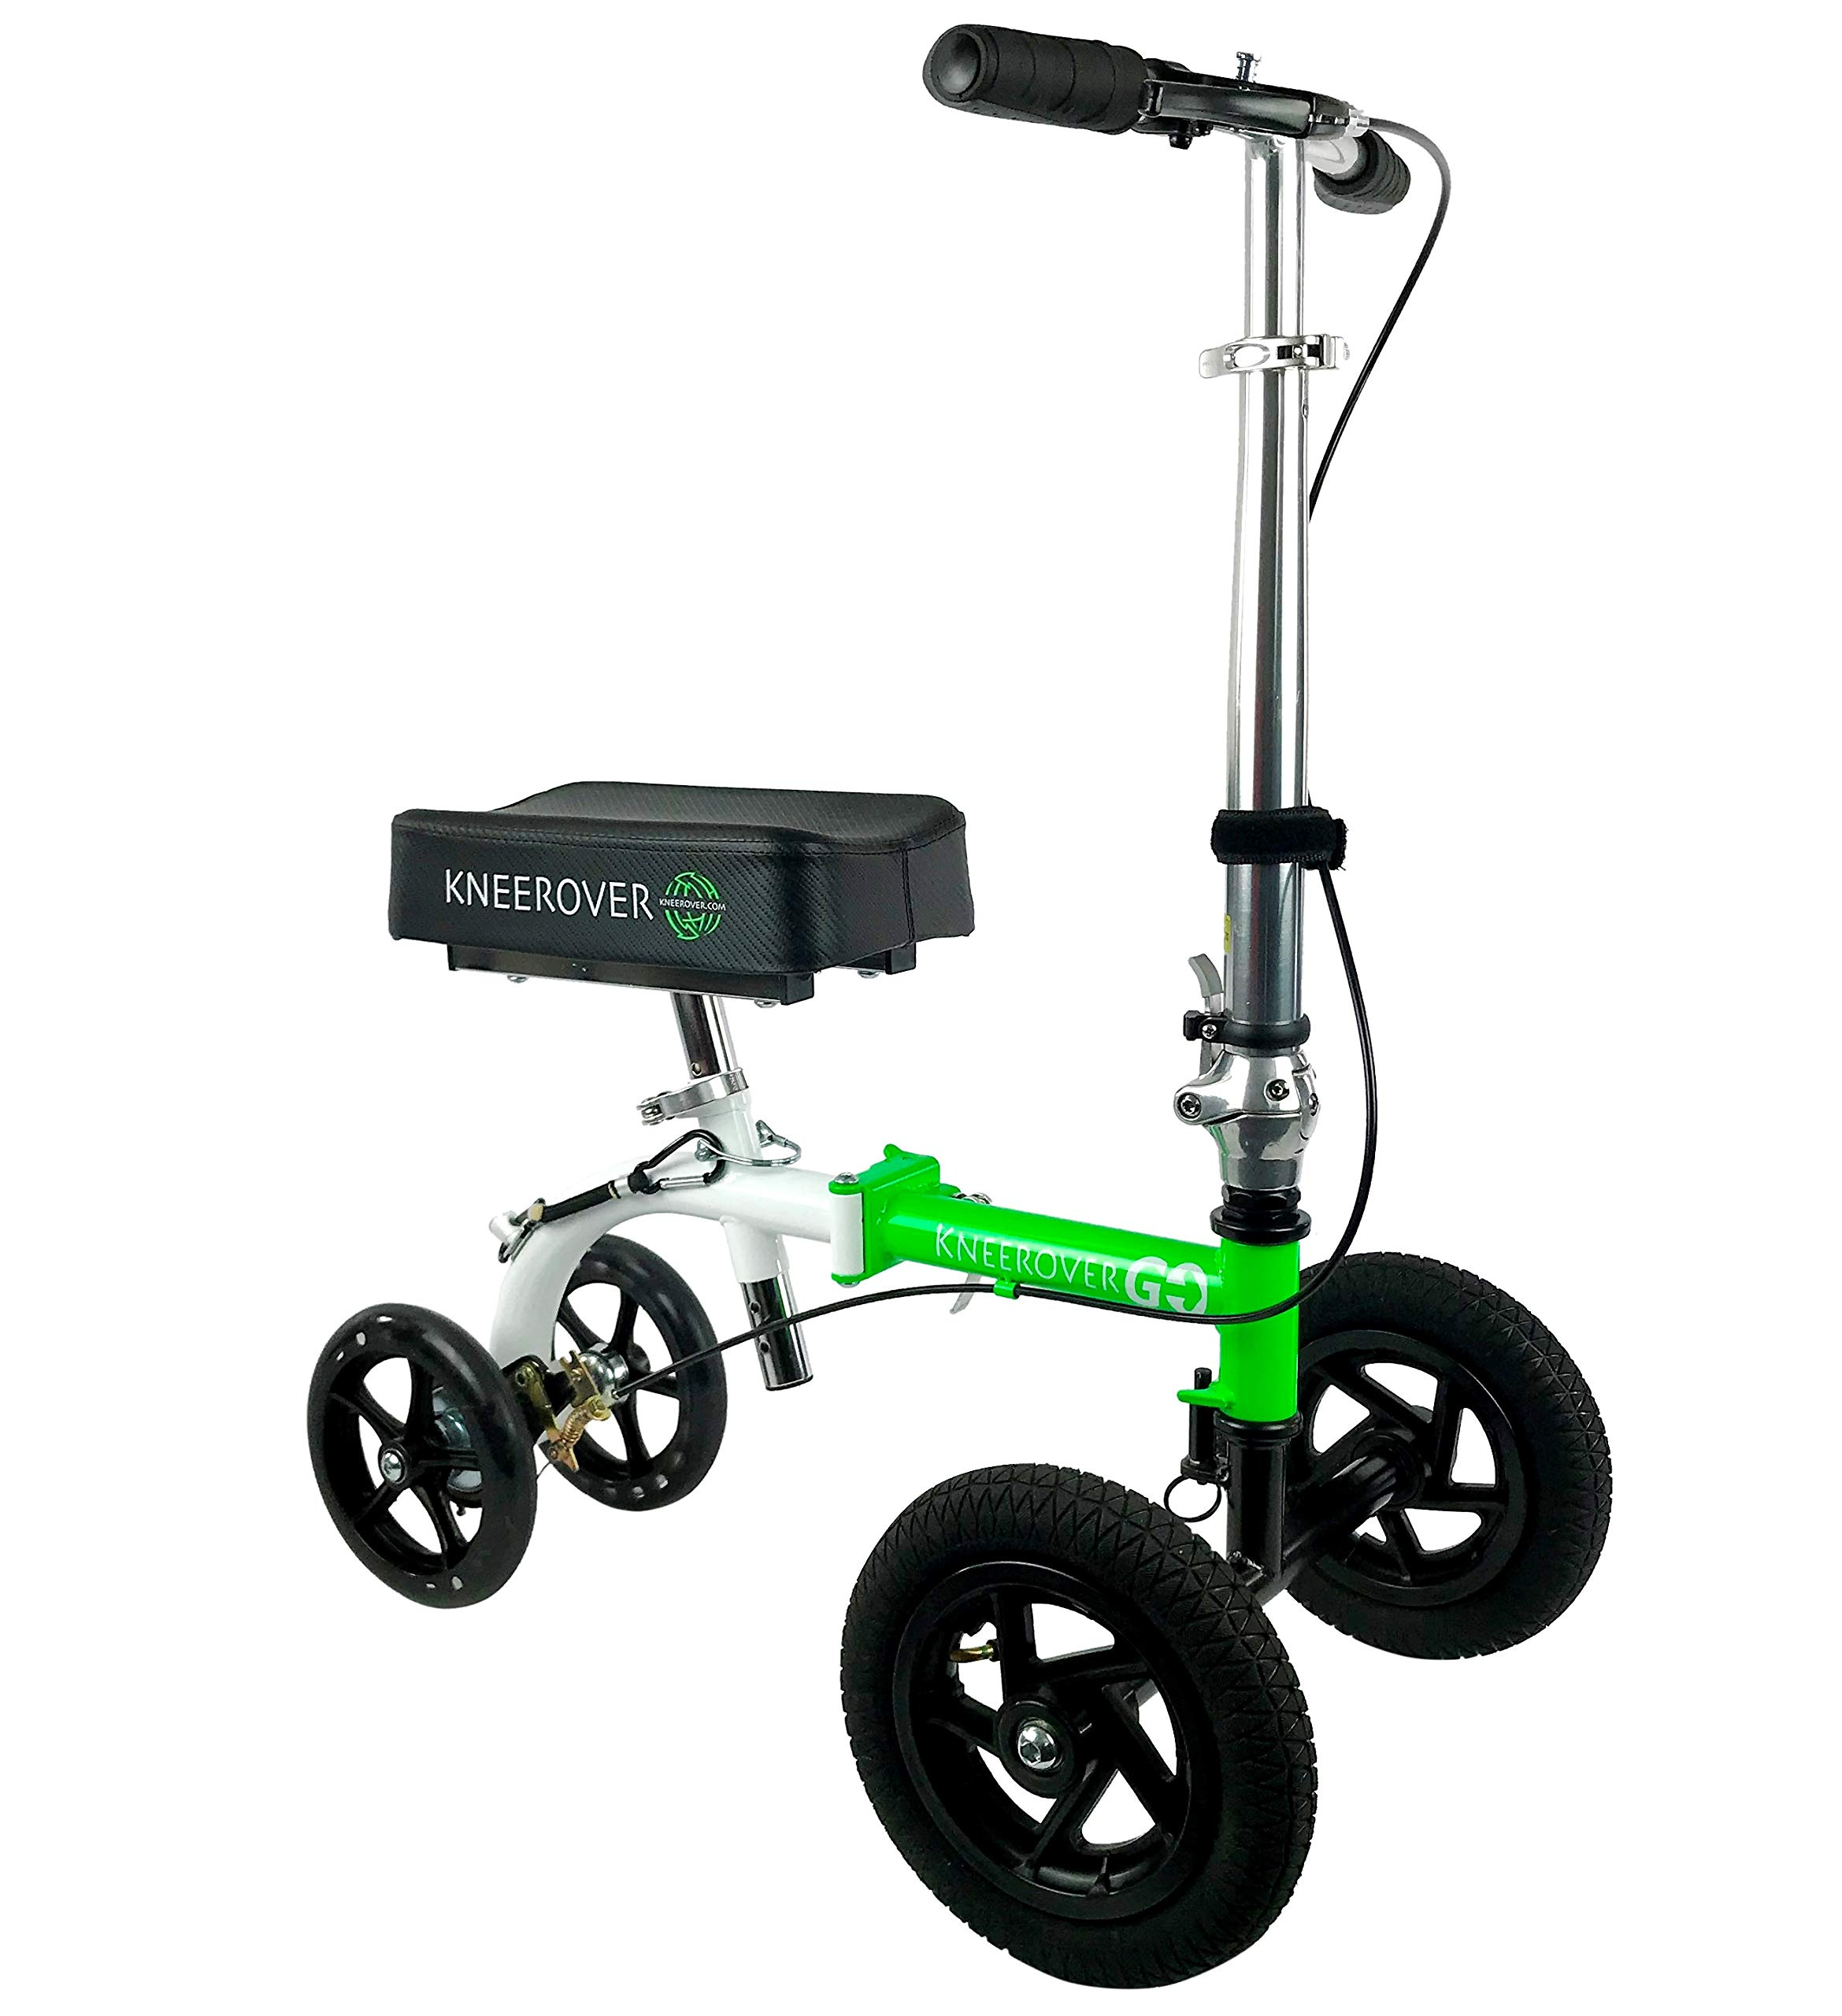 NEW KneeRover GO HYBRID - Most Compact and Portable Knee Scooter with ALL TERRAIN Front Wheels by KneeRover